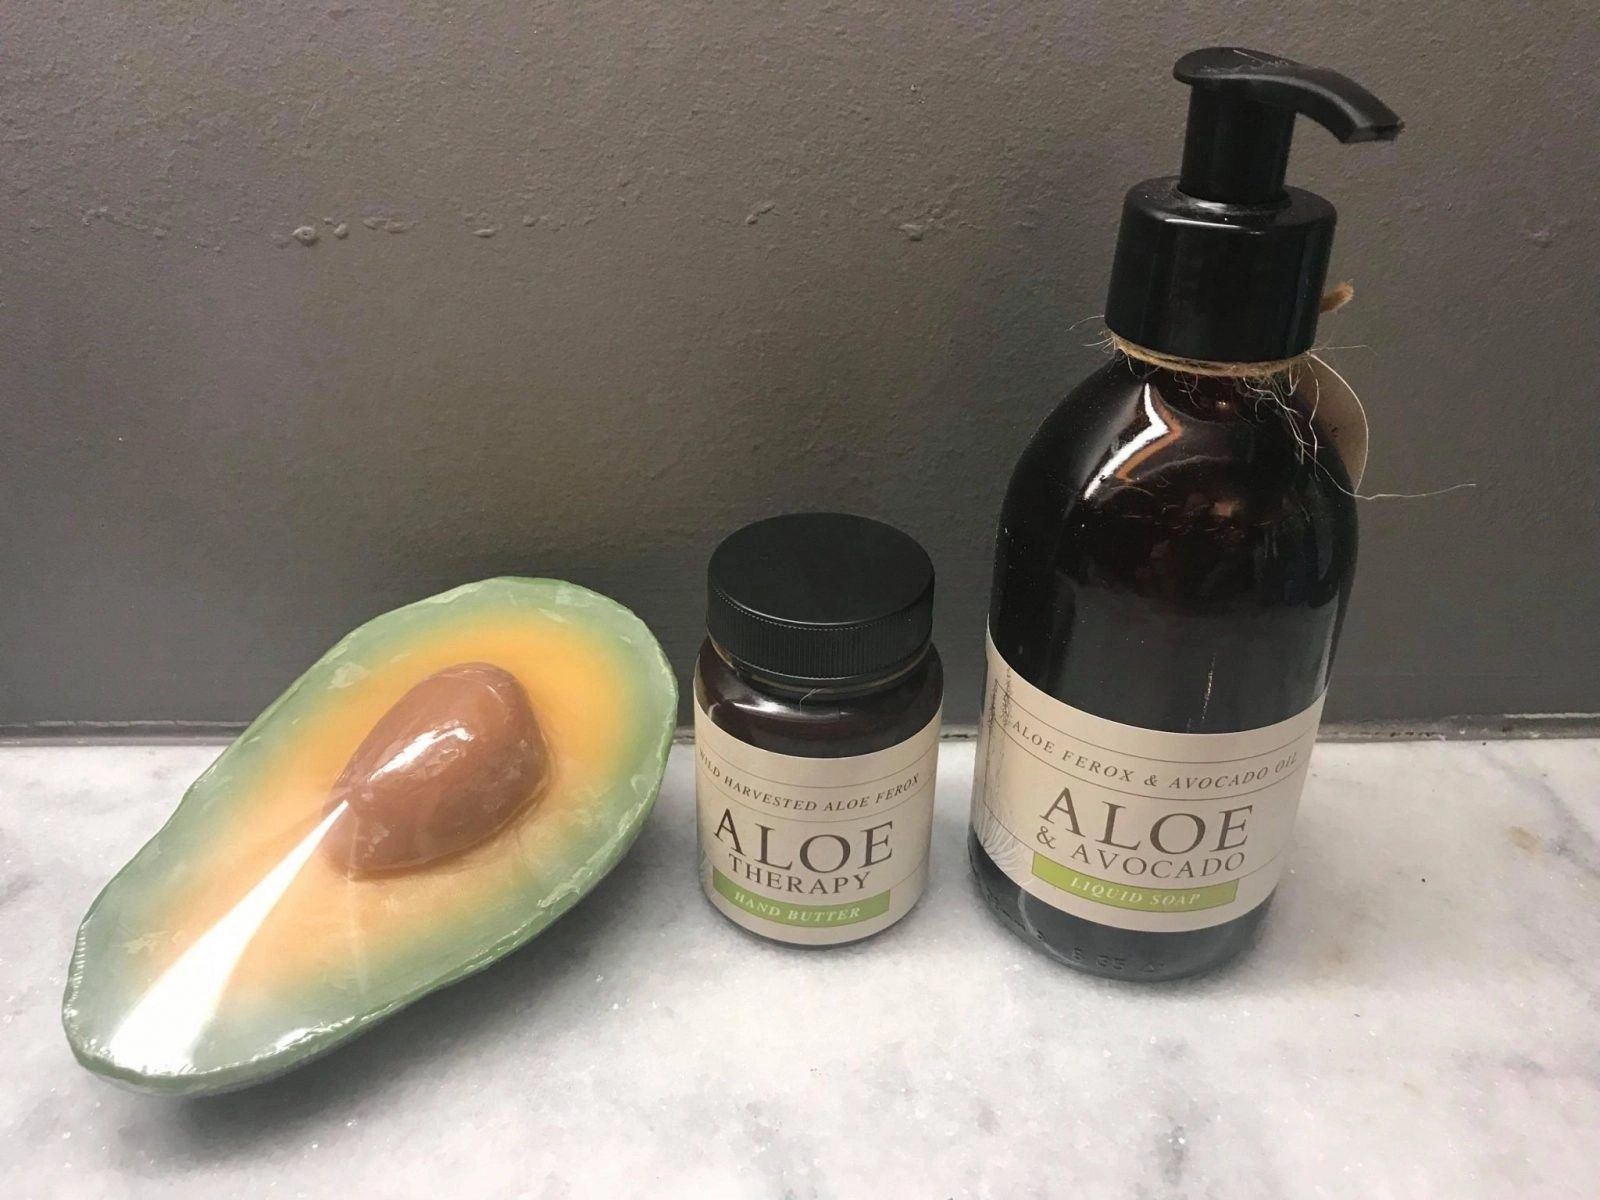 Rain Africa handcrafted hand and body products using only natural ingredients.